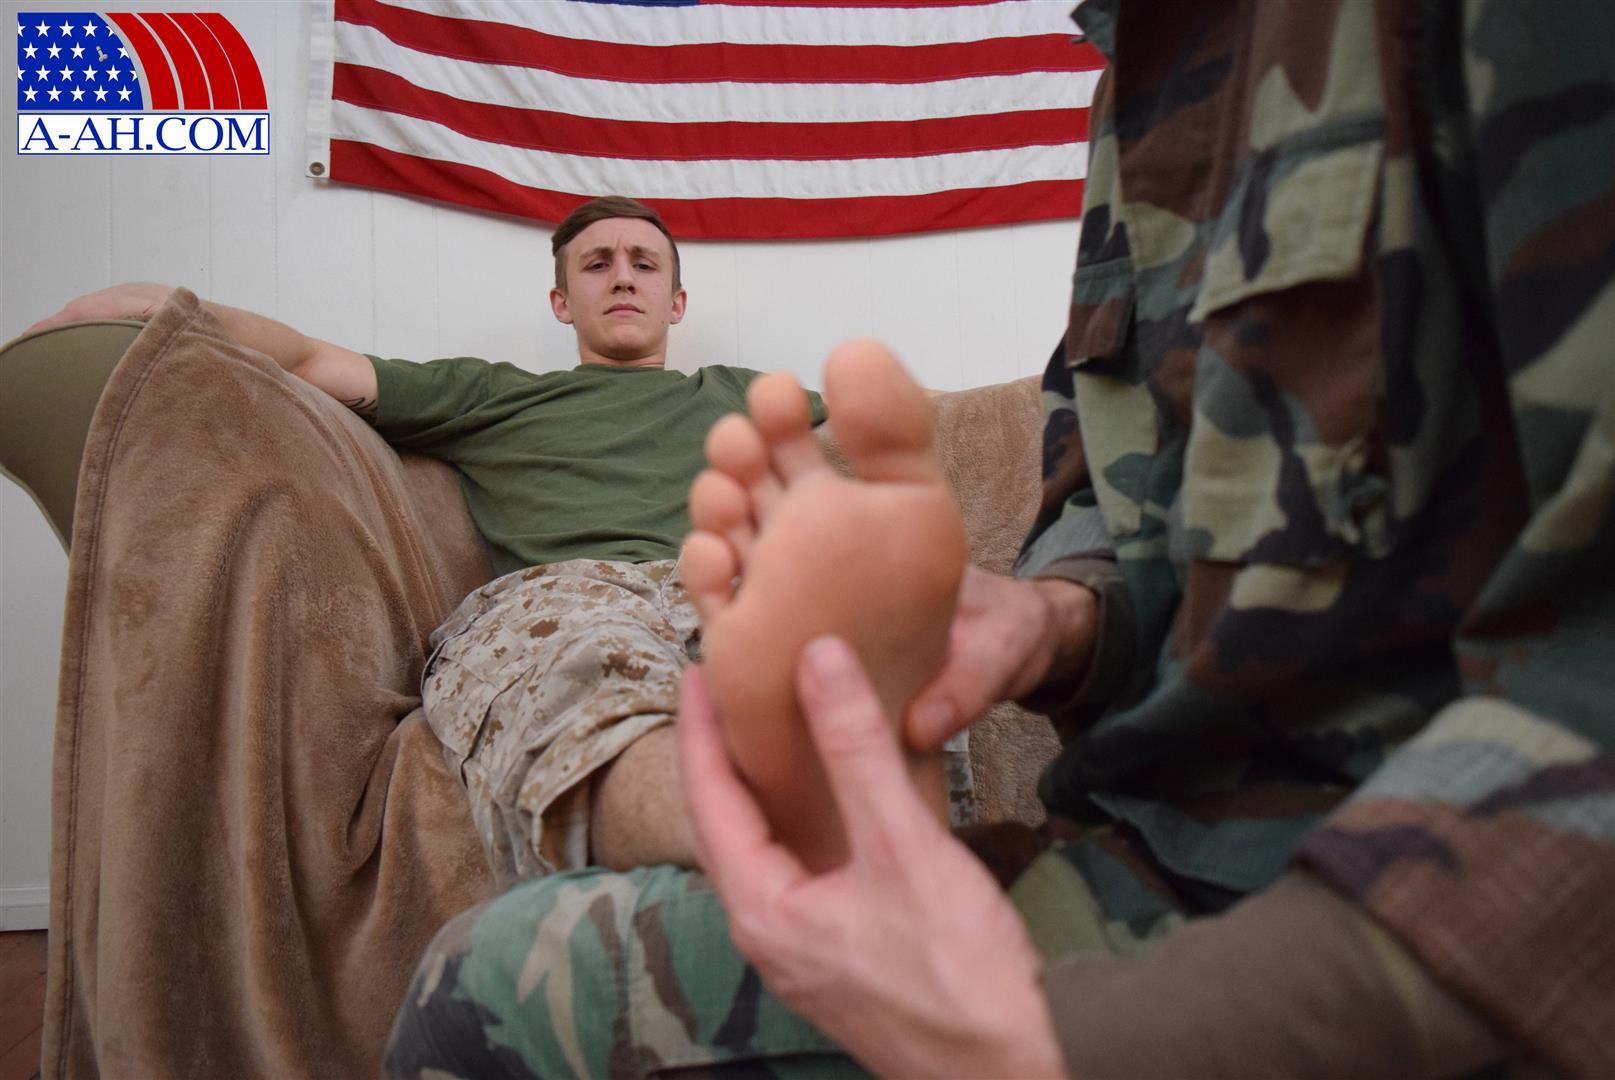 All-American-Heroes-Jett-and-Alex-Naked-Army-Guy-Gets-First-Gay-Blowjob-Amateur-Gay-Porn-03 Straight Army Private Gets A Foot Massage and His First Gay Blow Job